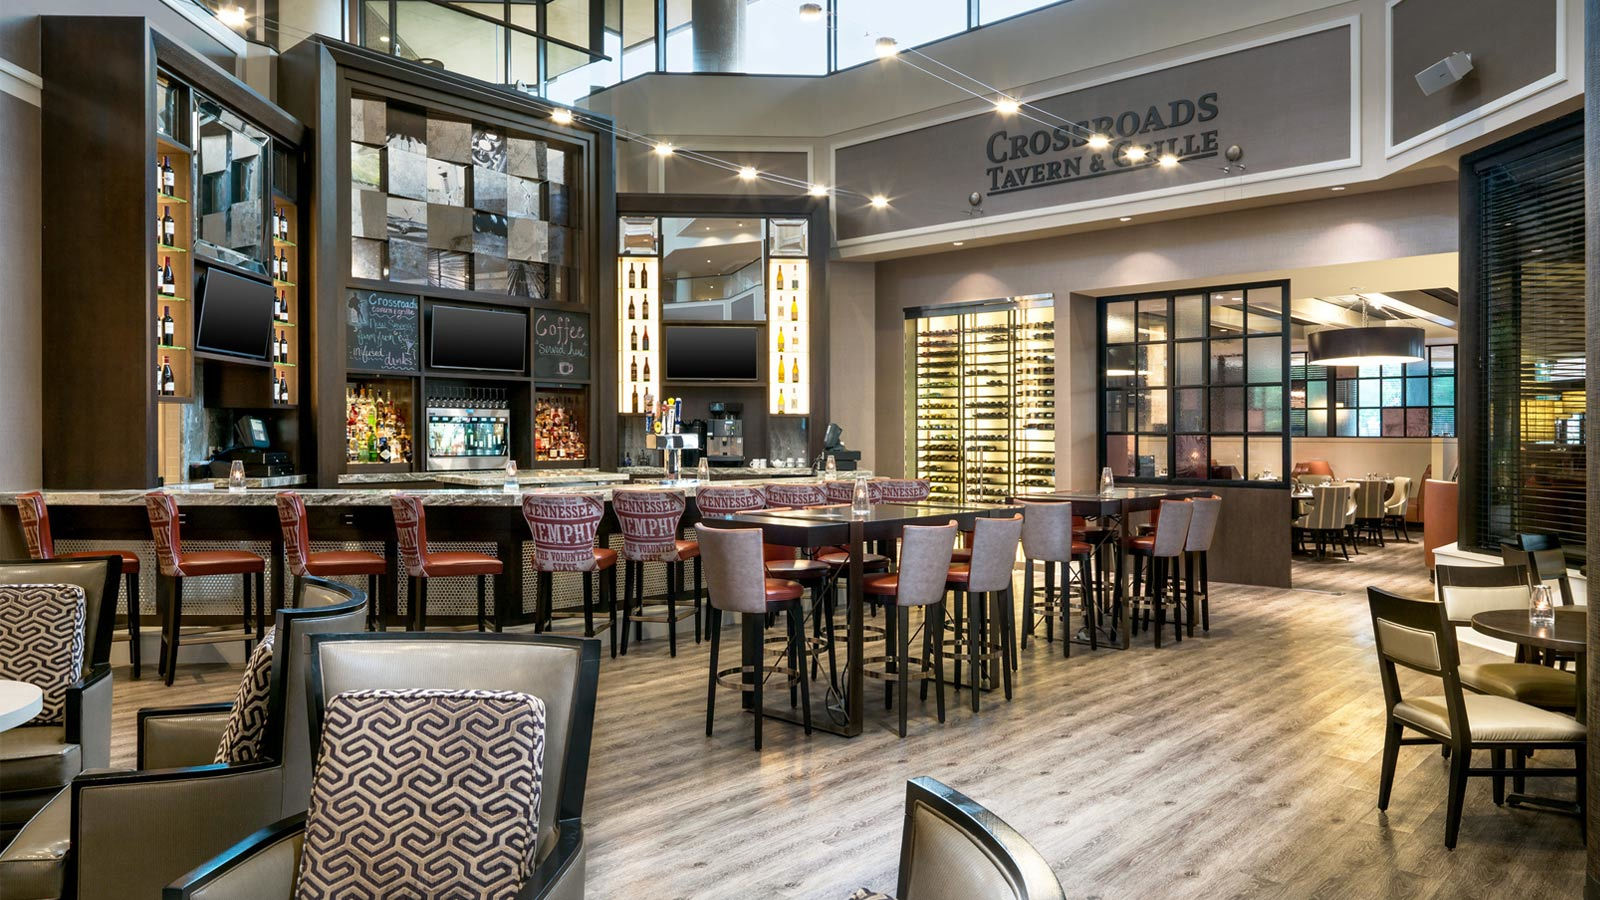 Sheraton Memphis Downtown Hotel Restaurant - Crossroads Tavern and Grille